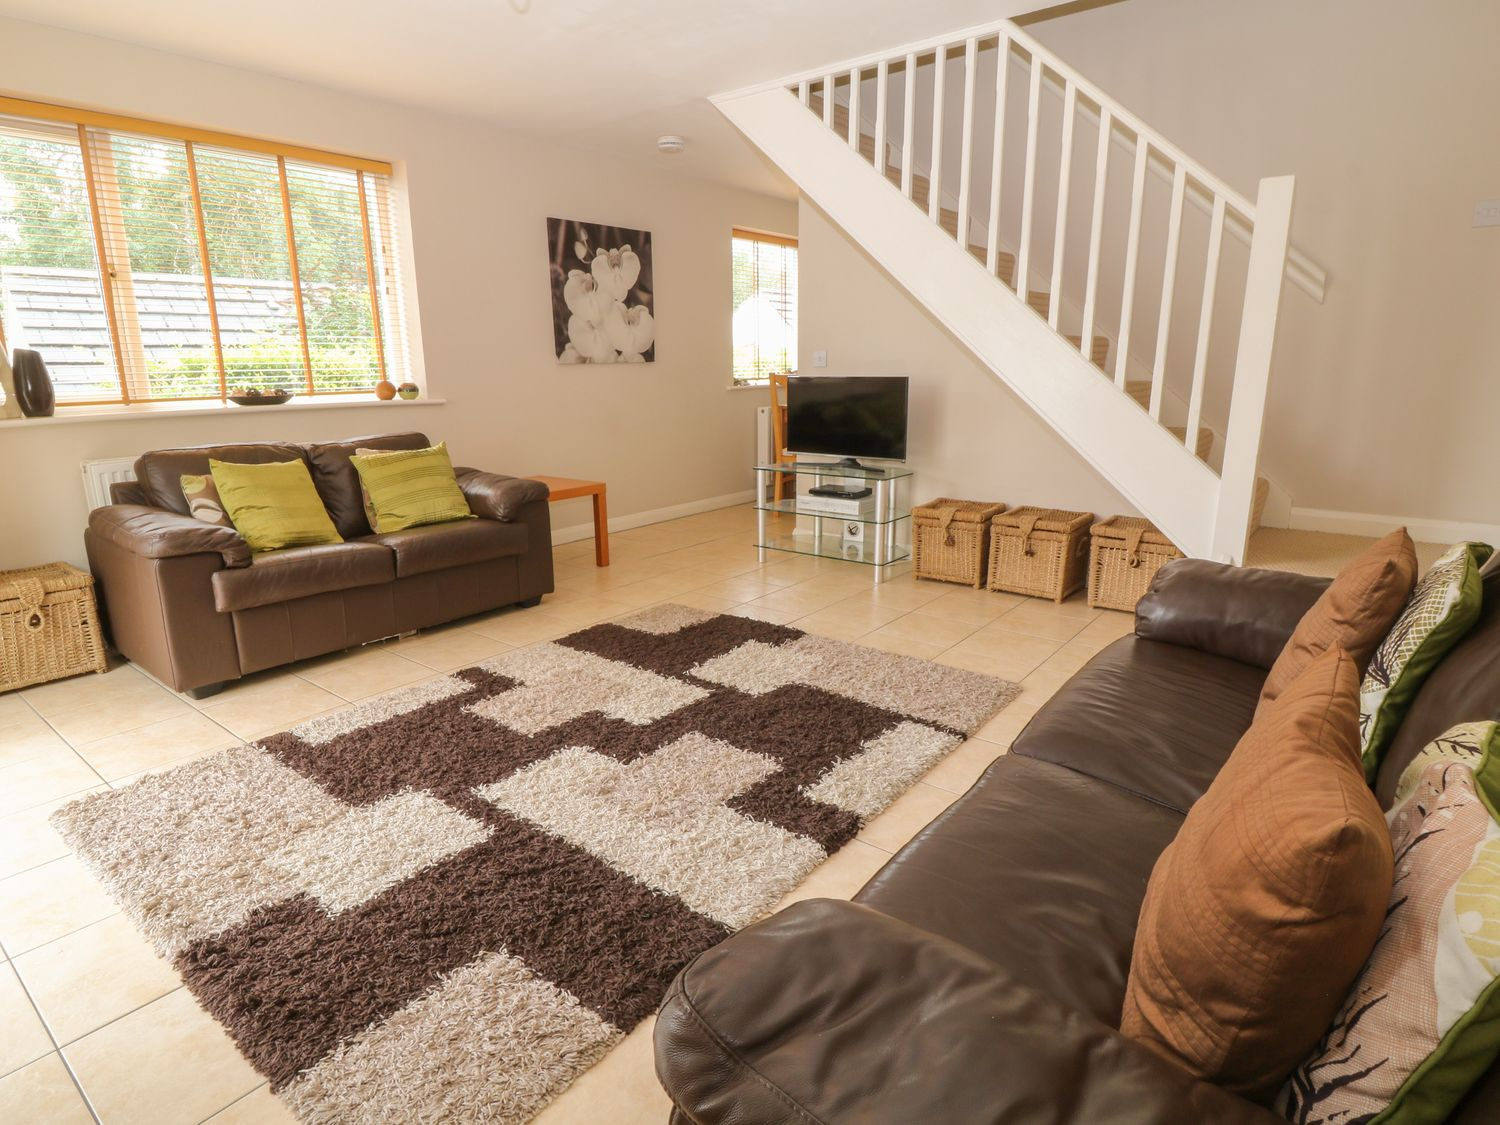 7 Forest Park Lodge in High Bickington - sleeps 4 people